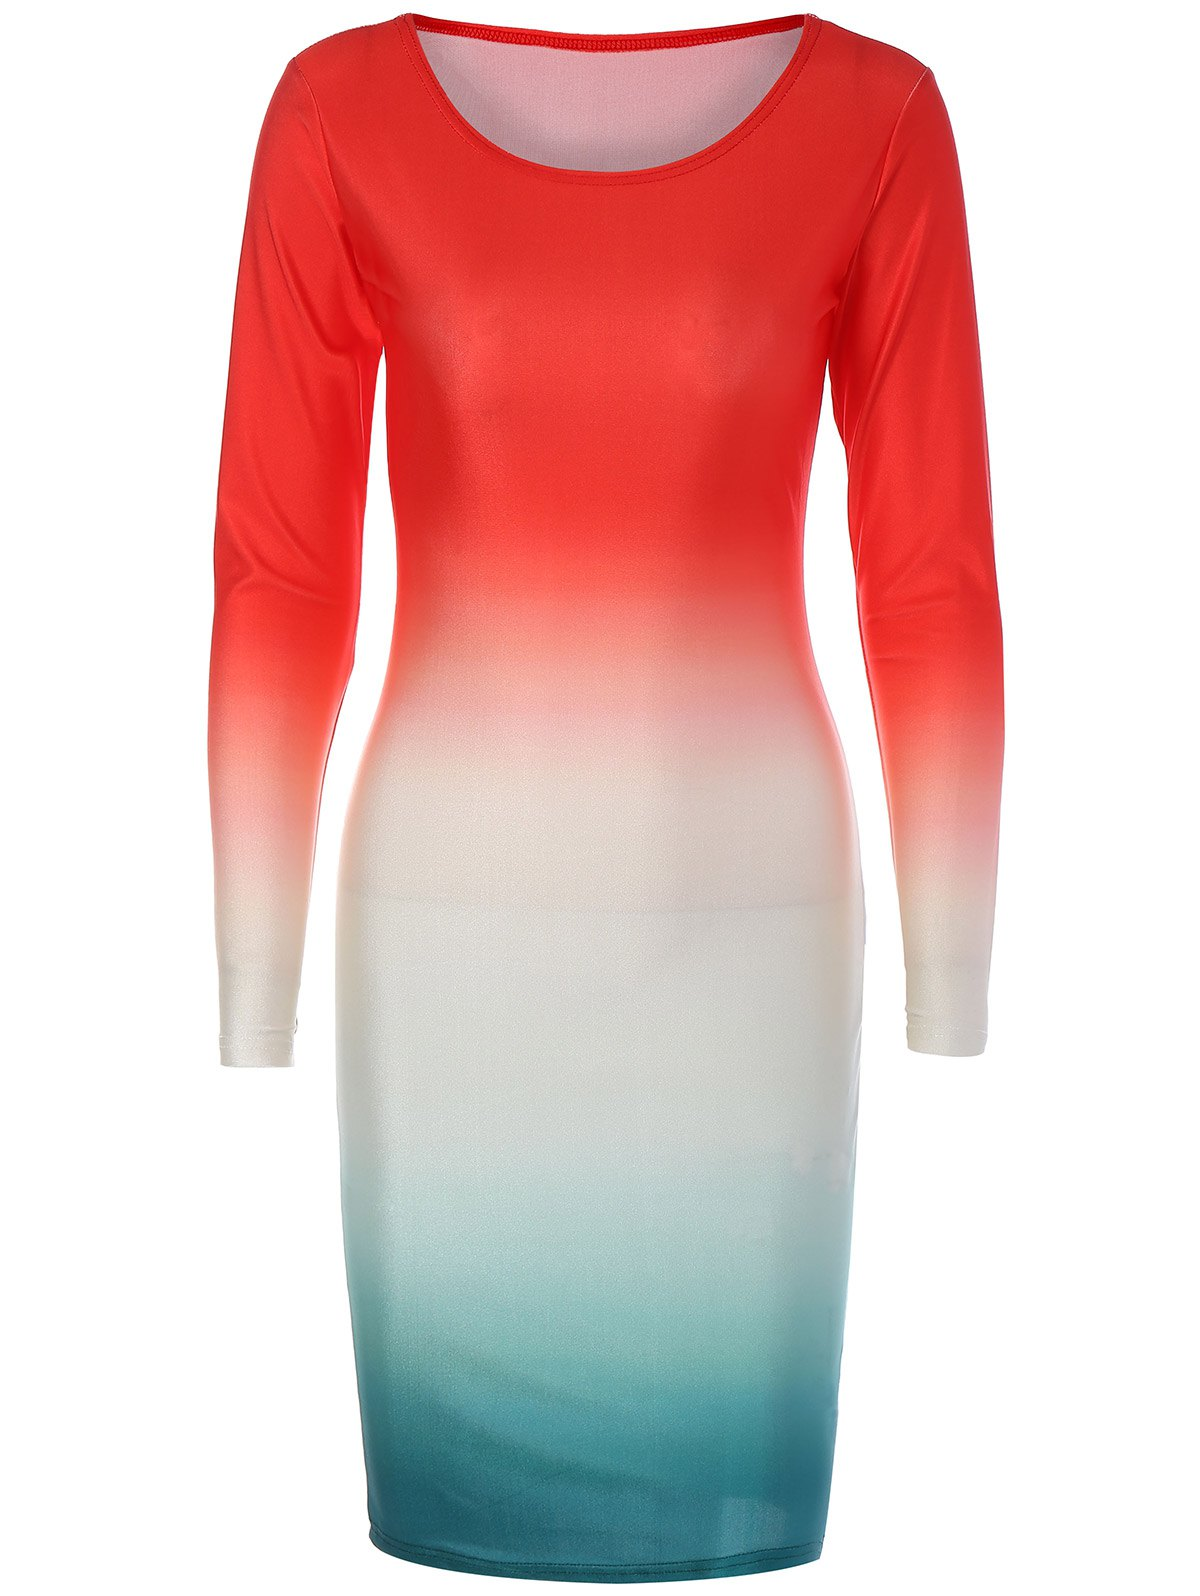 Long Sleeve Ombre Slimming DressWomen<br><br><br>Size: S<br>Color: RED